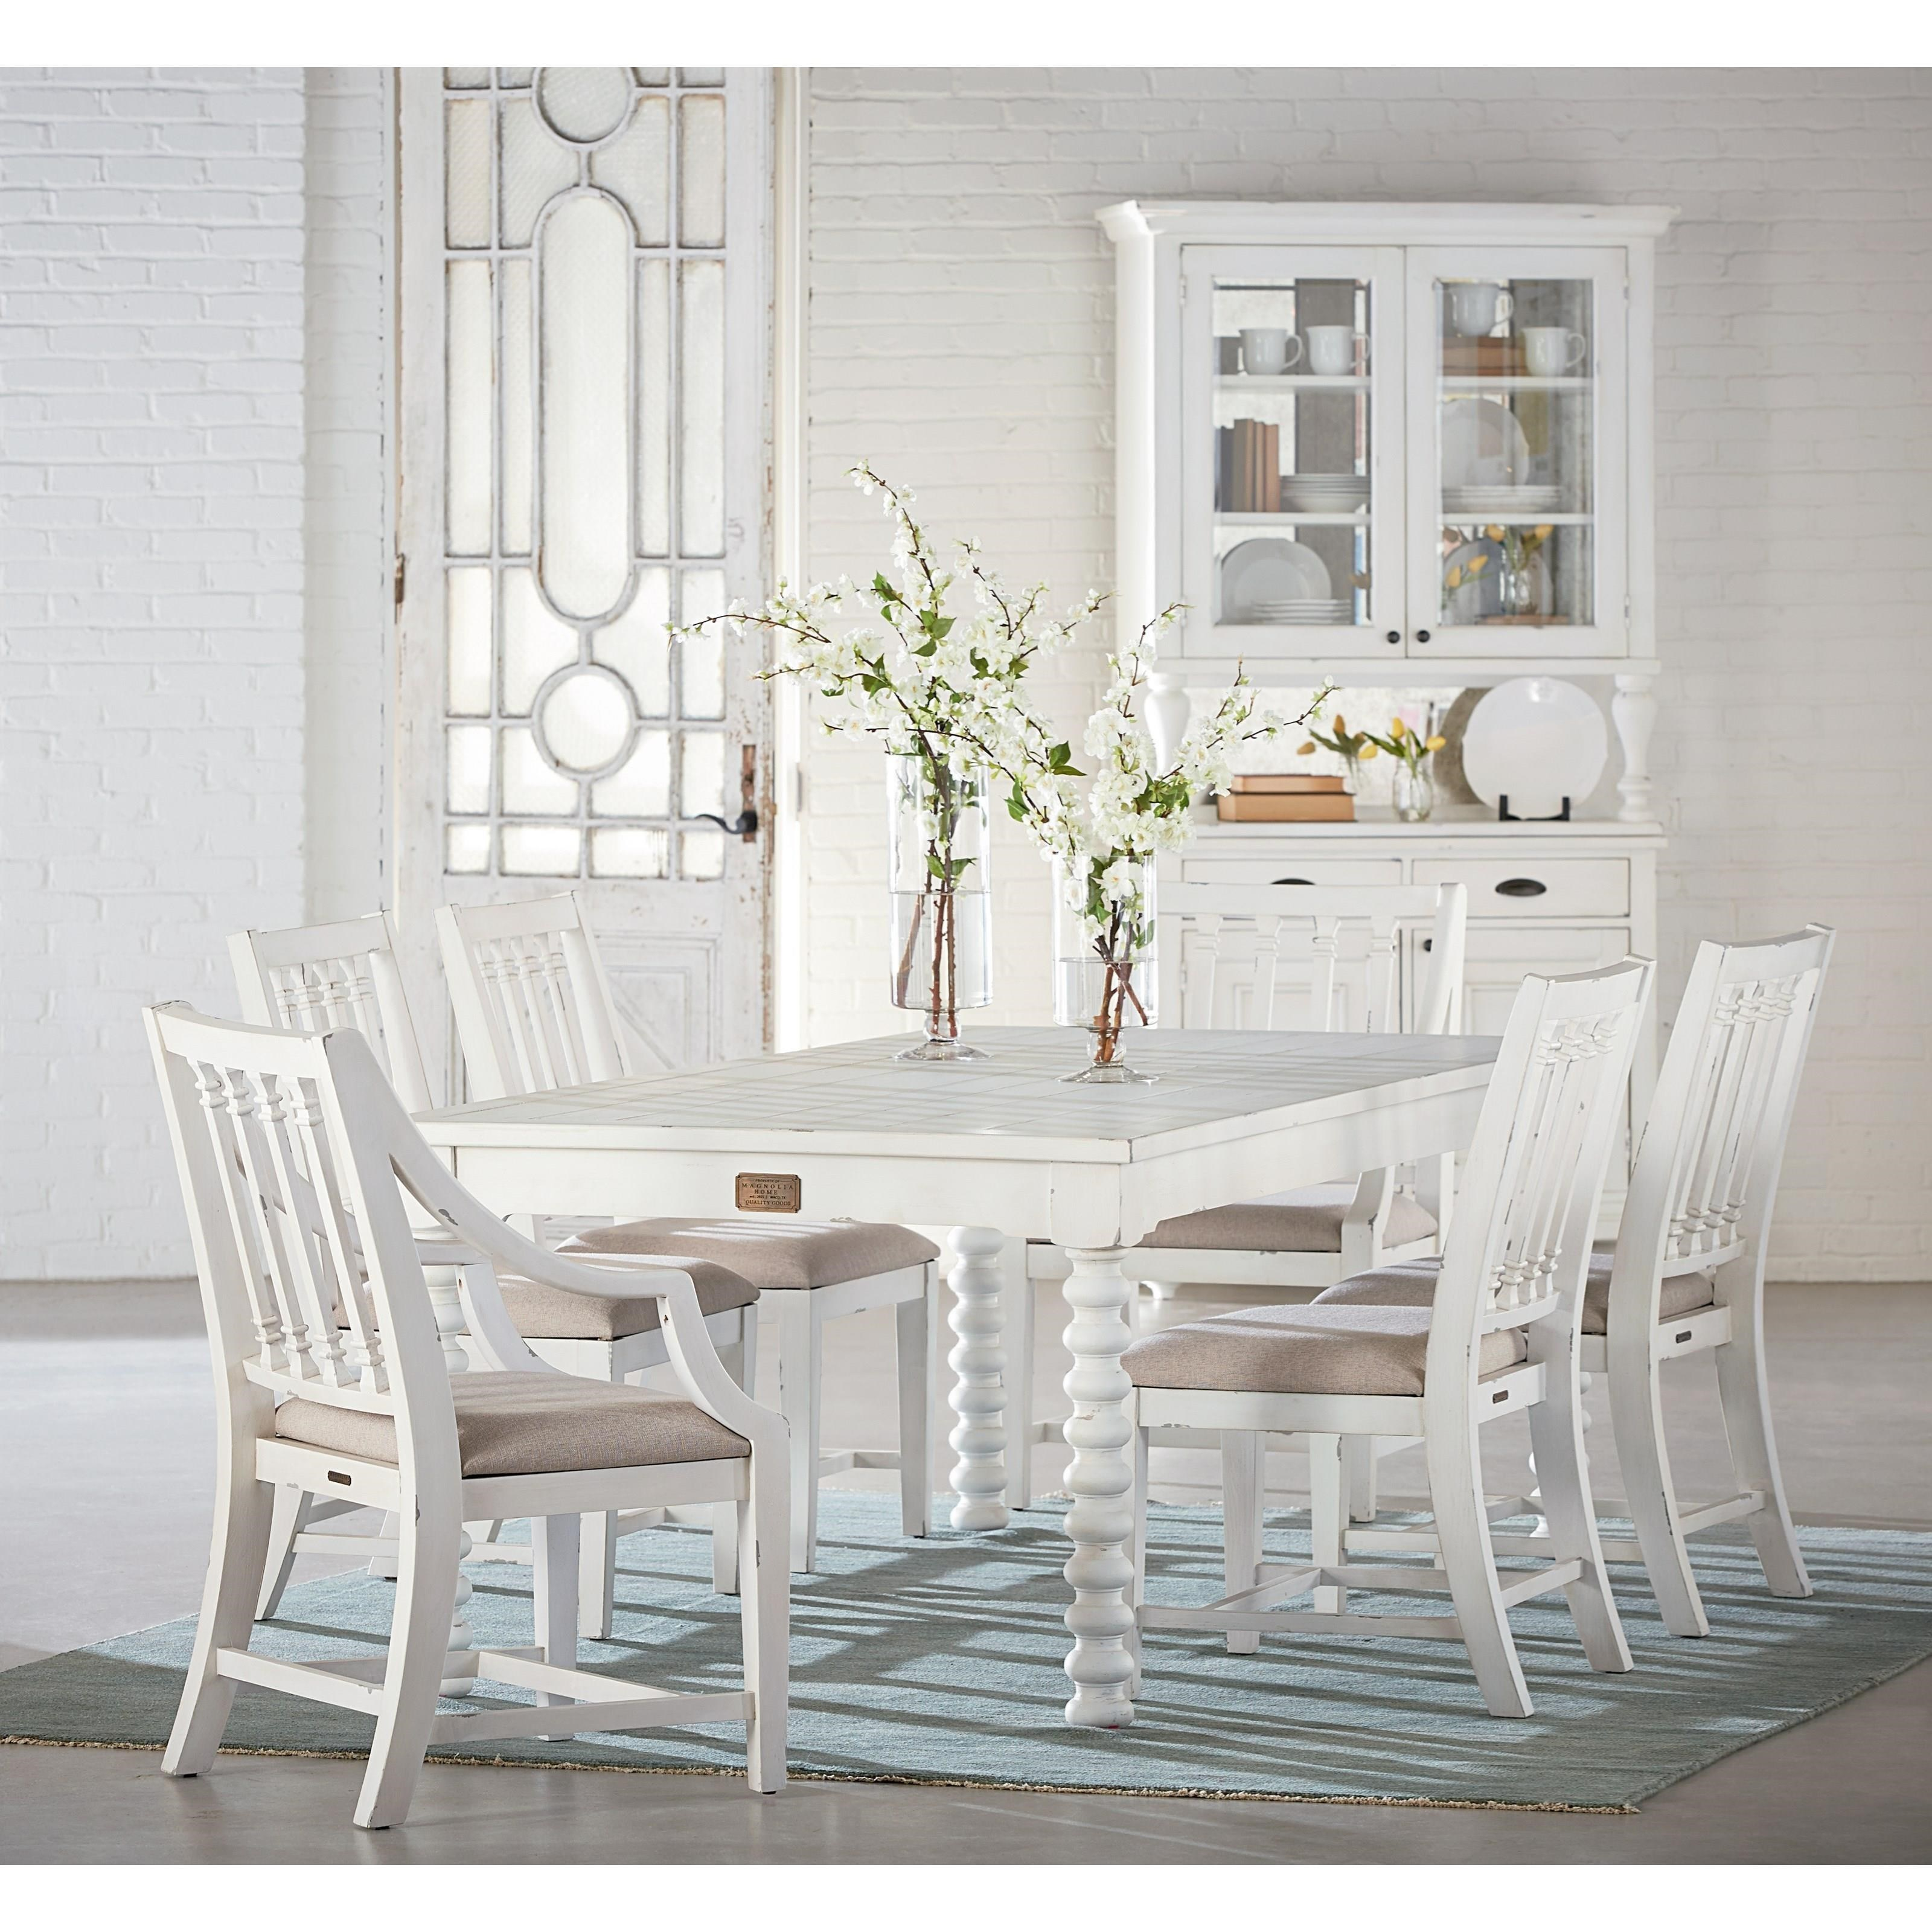 Dining Room Table With Spool Legs By Magnolia Home Joanna